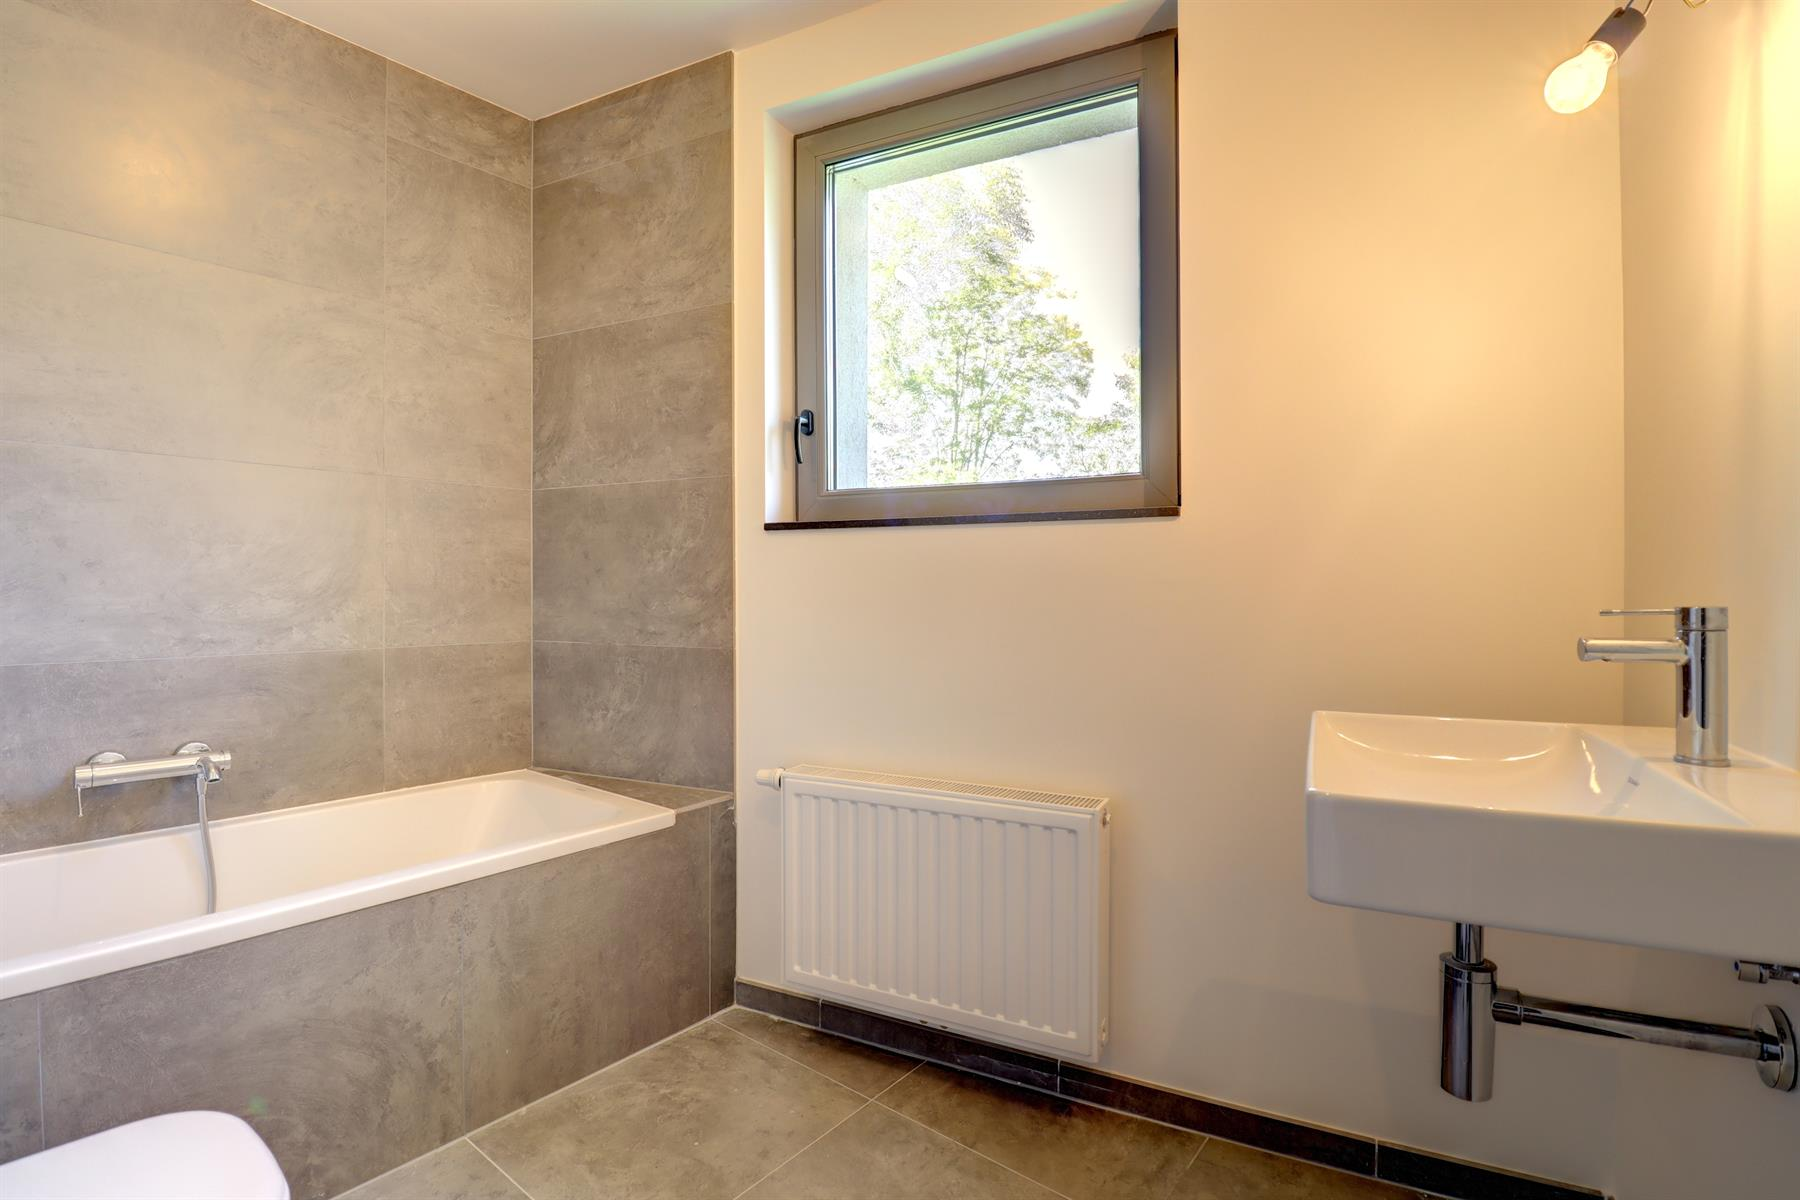 Penthouse - Uccle - #4390463-7